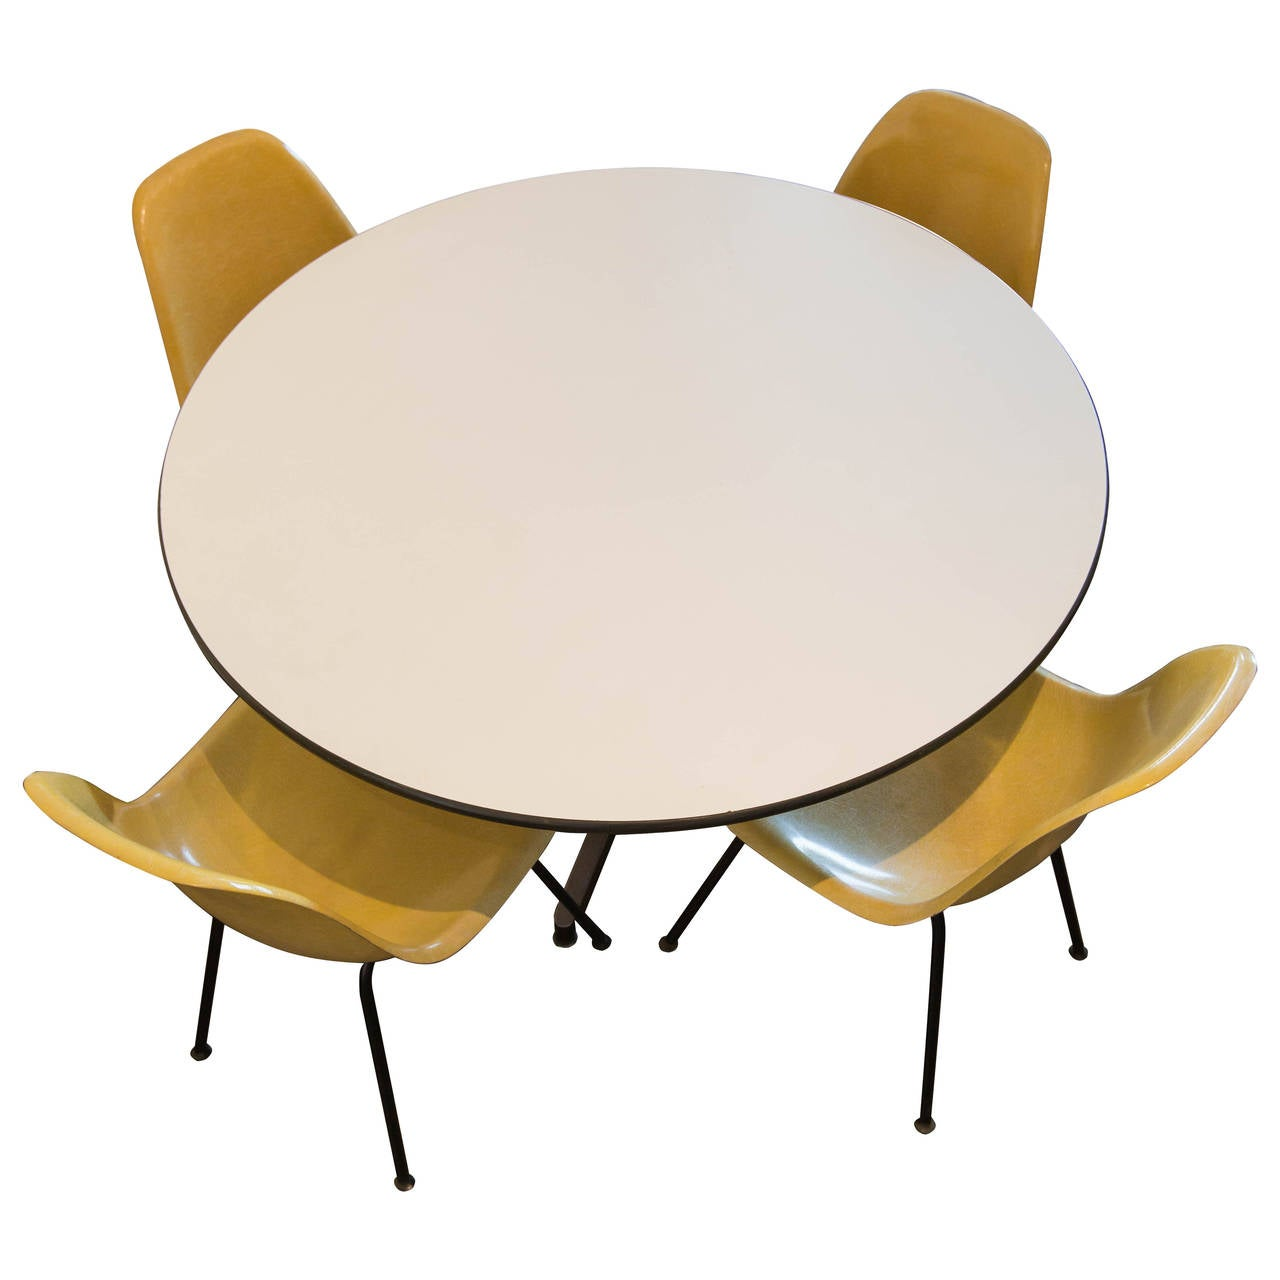 Charles eames dining table and four shell chairs by